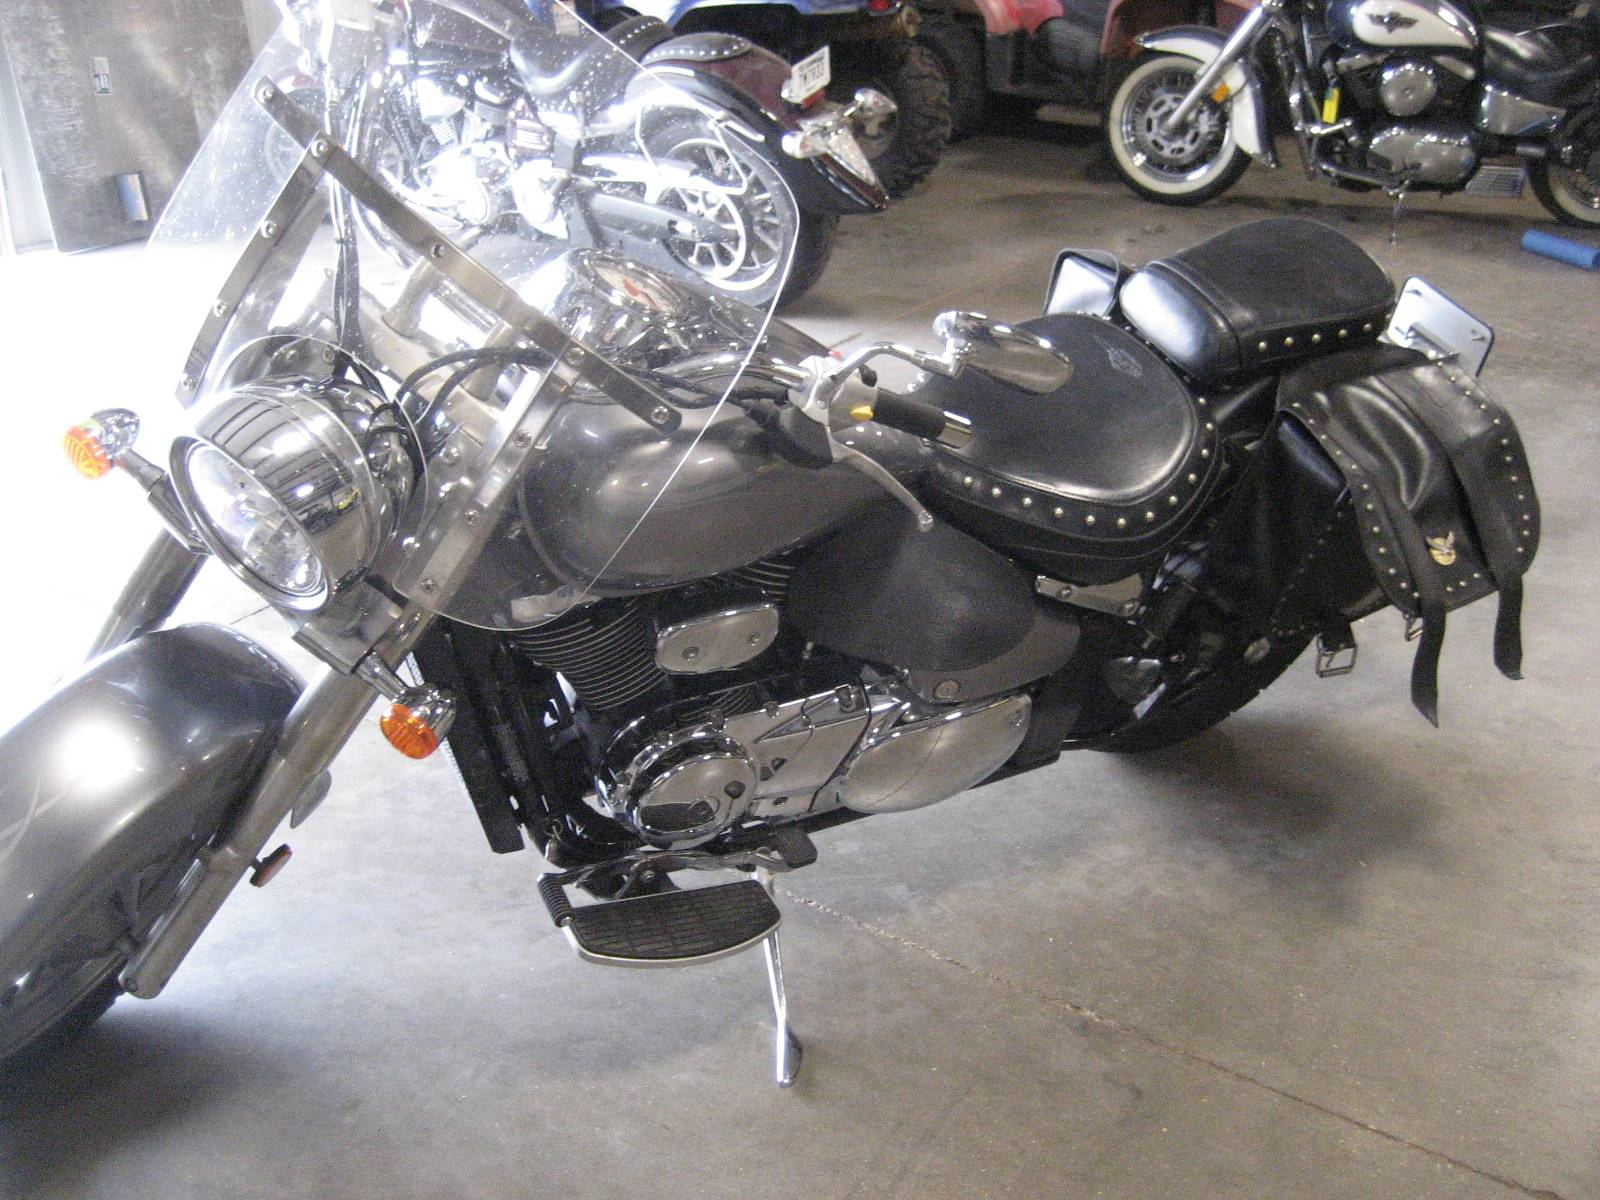 2007 Suzuki Boulevard C50C in Shawnee, Oklahoma - Photo 2